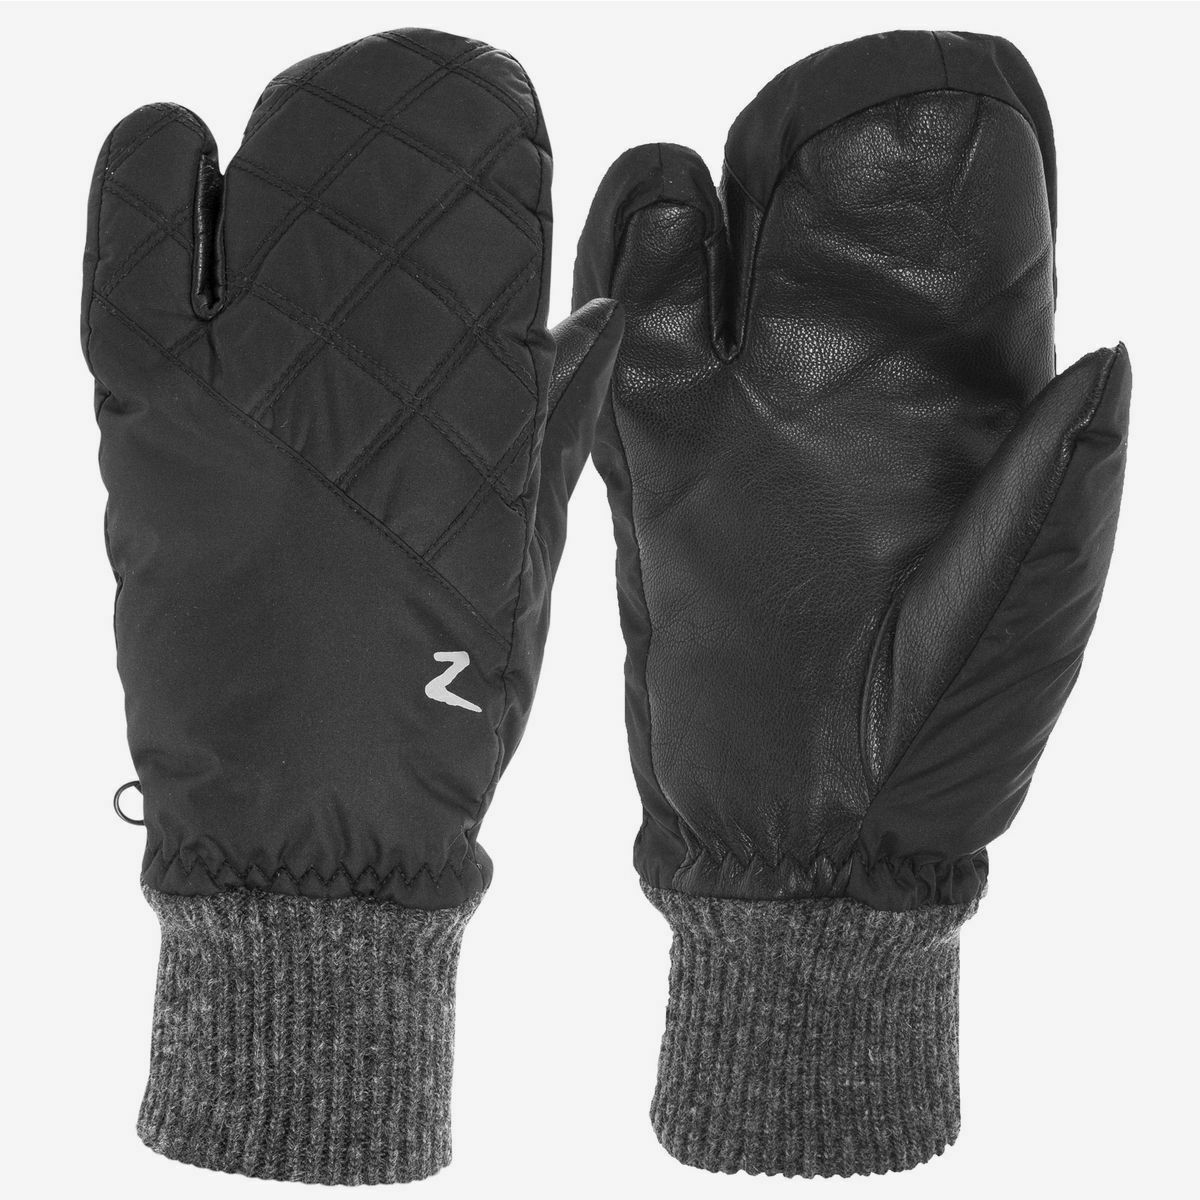 Horze Padded 3-Finger Winter Riding  Mittens with Leather Grip Palm  with cheap price to get top brand